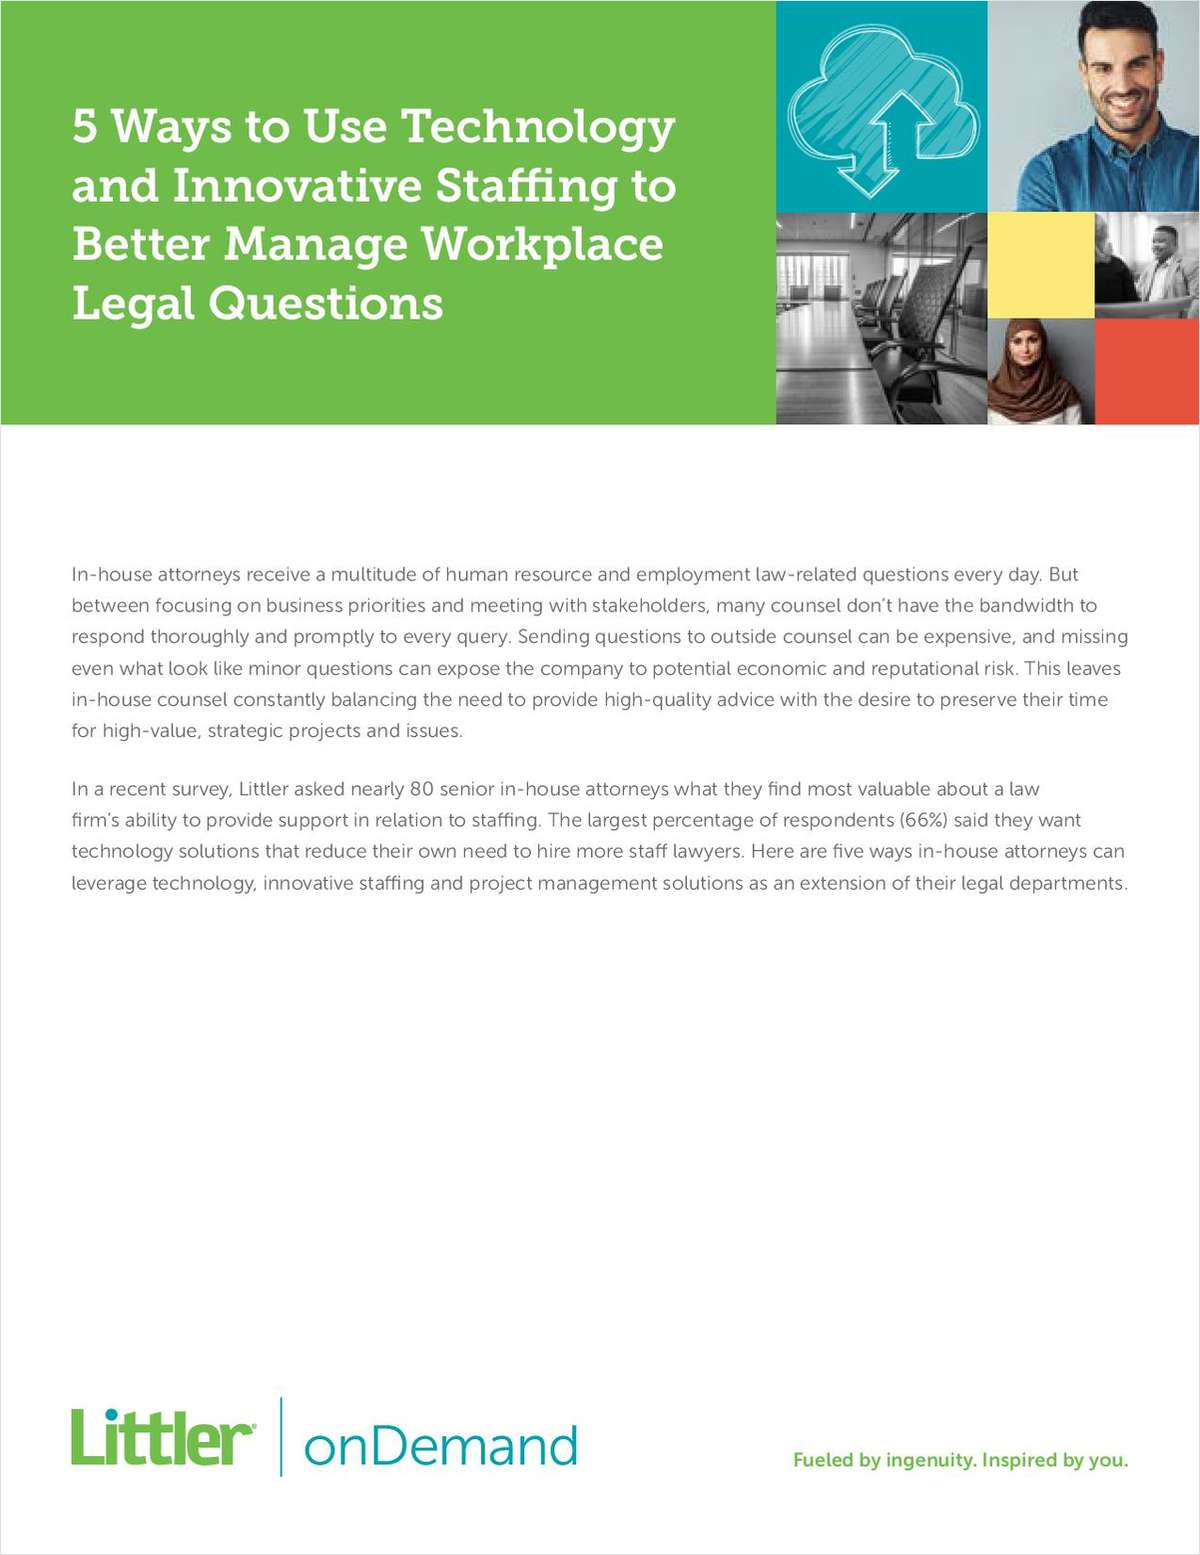 5 Ways to Use Technology and Innovative Staffing to Better Manage Workplace Legal Questions